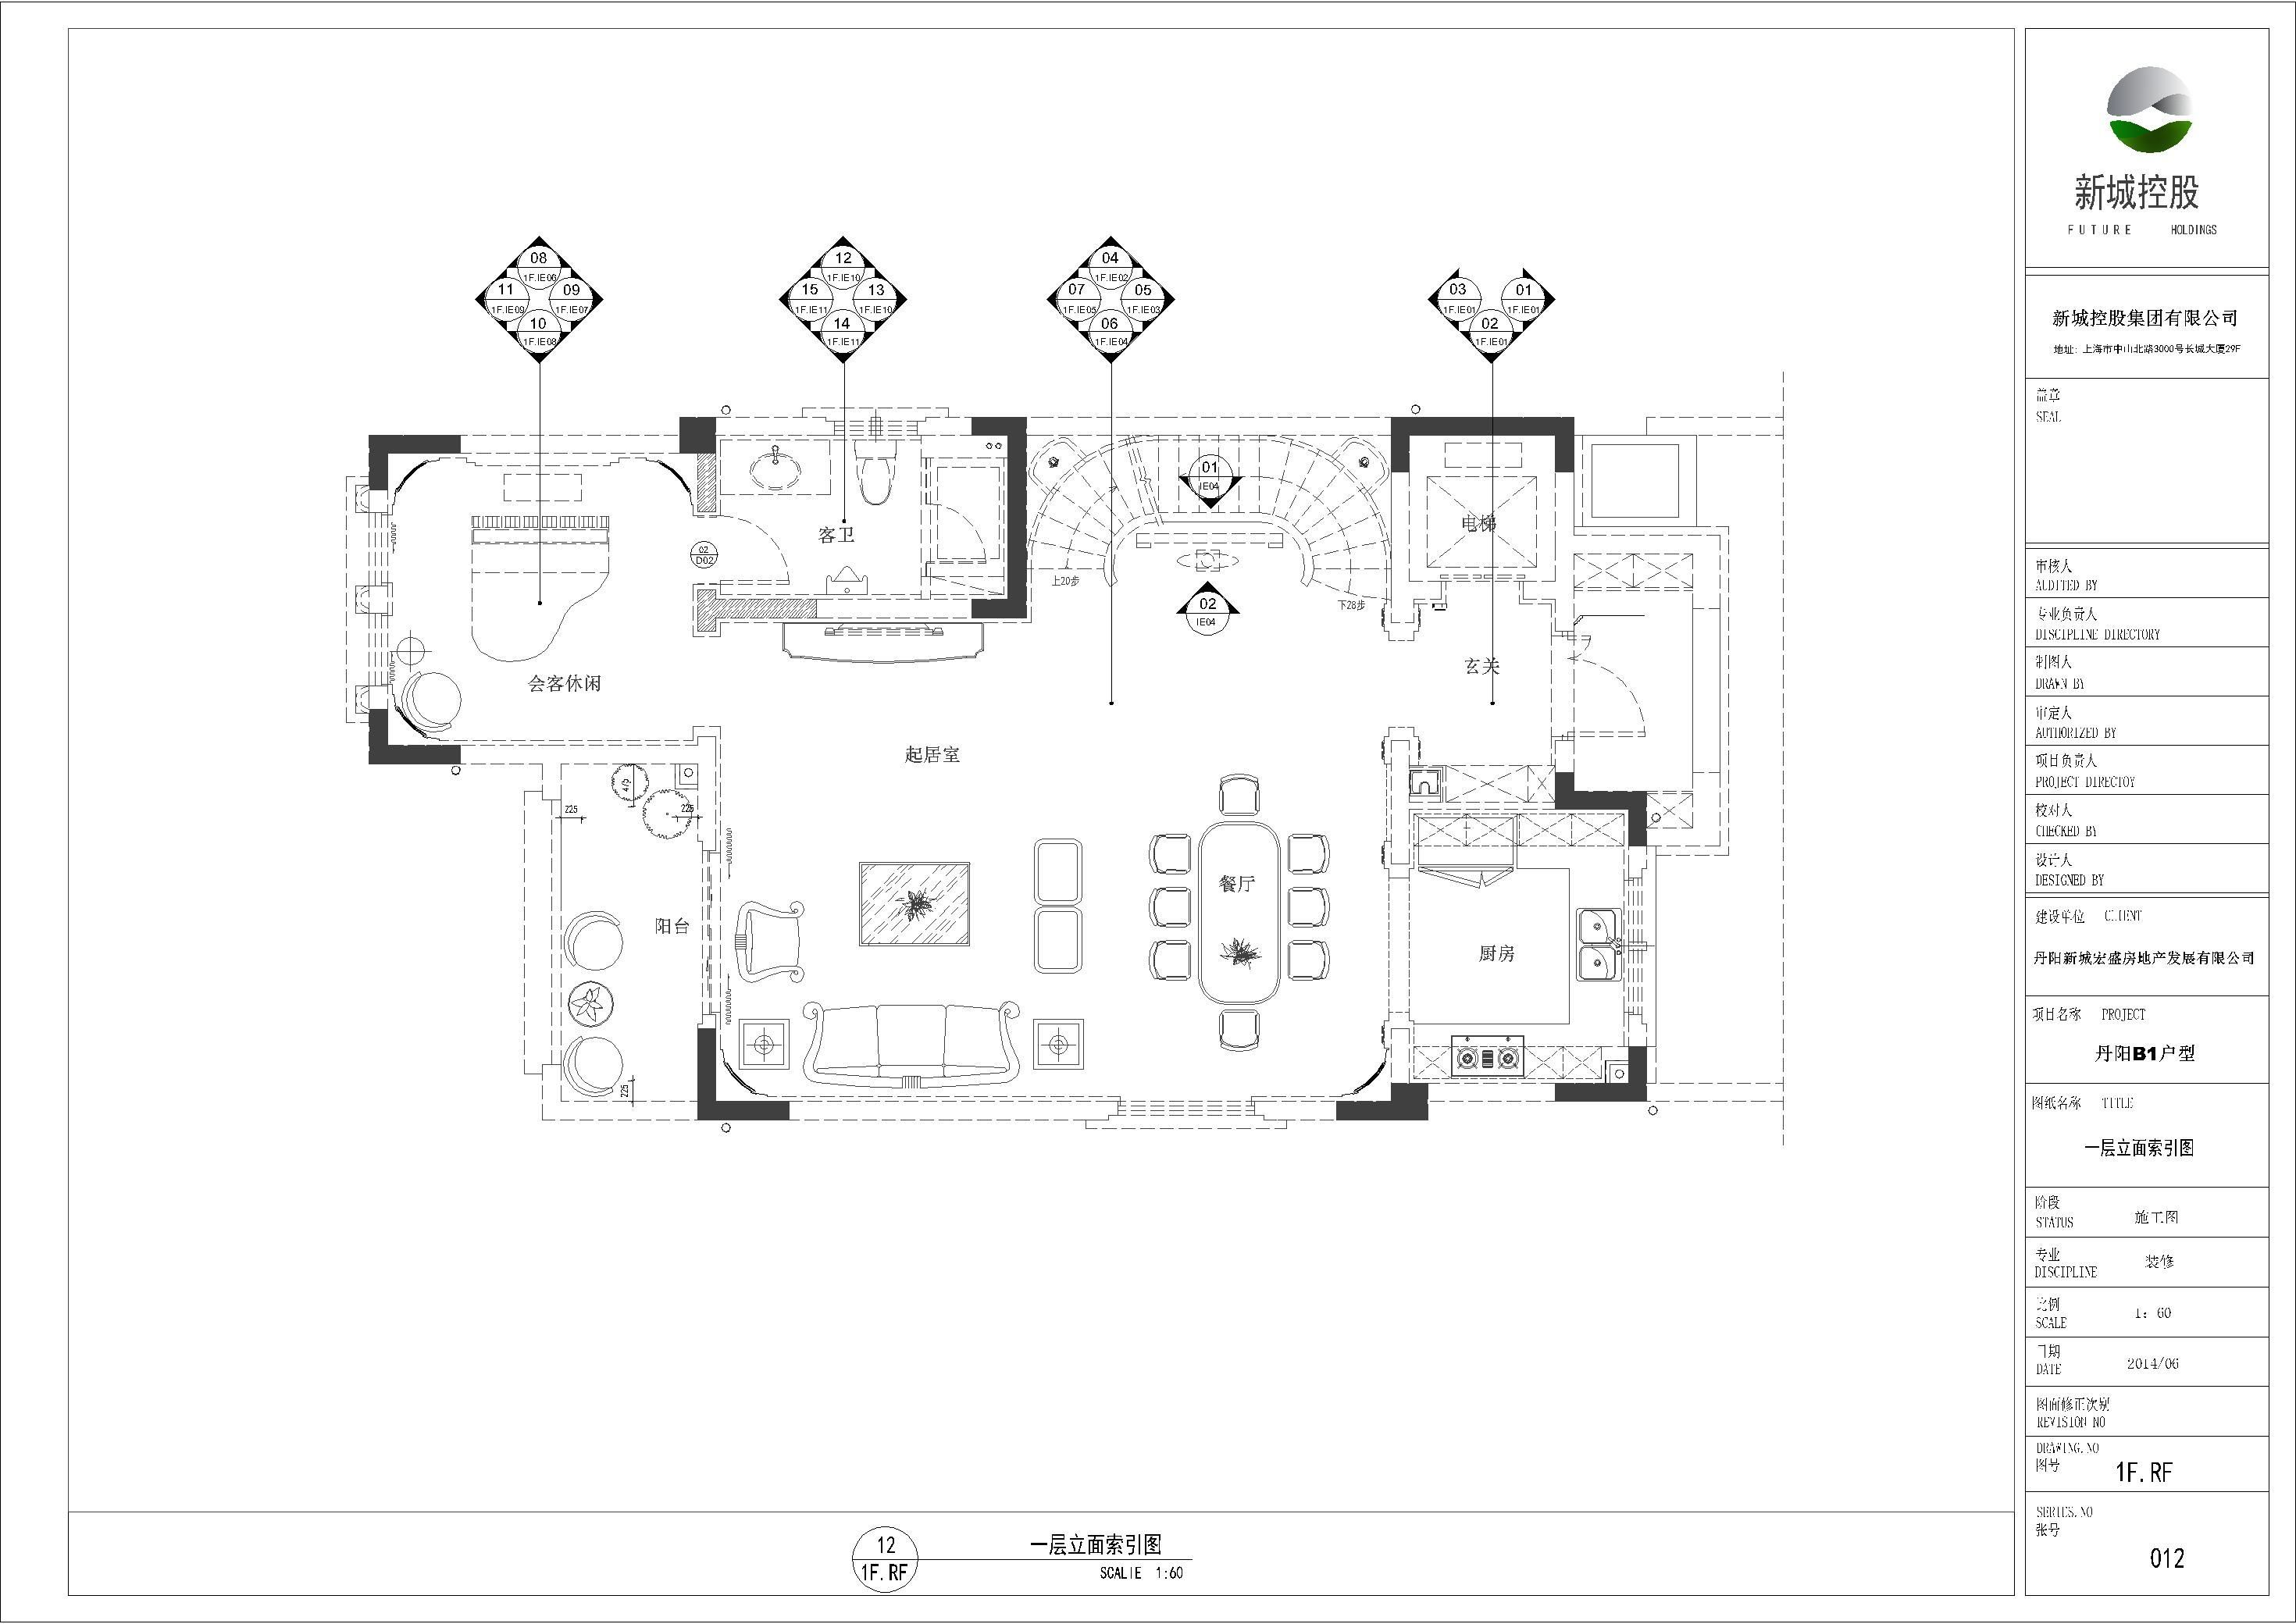 Pin On Interior Design Cad Block Free Download Autocad Block Cad Block Cad Drawings Autocad Drawing